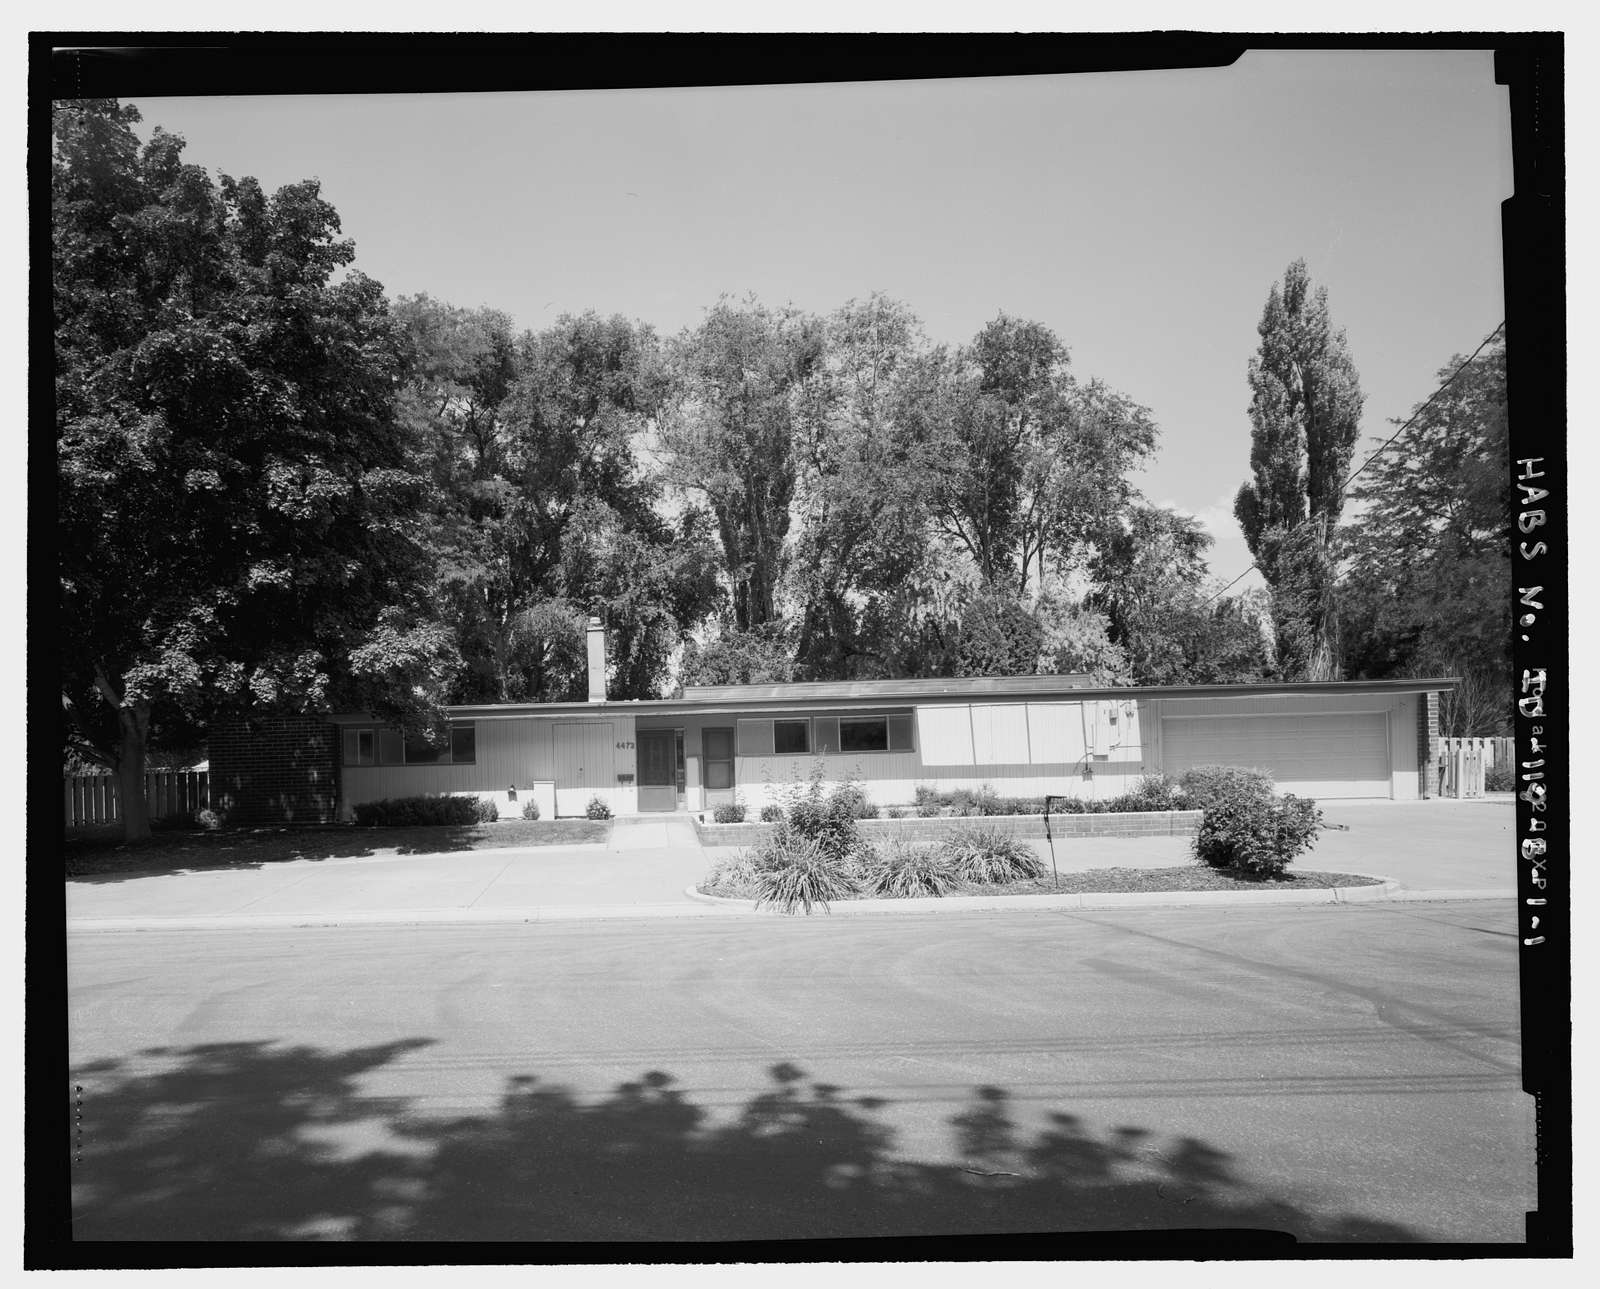 Mountain Home Air Force Base 1958 Senior Officers' Housing, General's Residence, Rabeni Street (originally Ivy Street), Mountain Home, Elmore County, ID